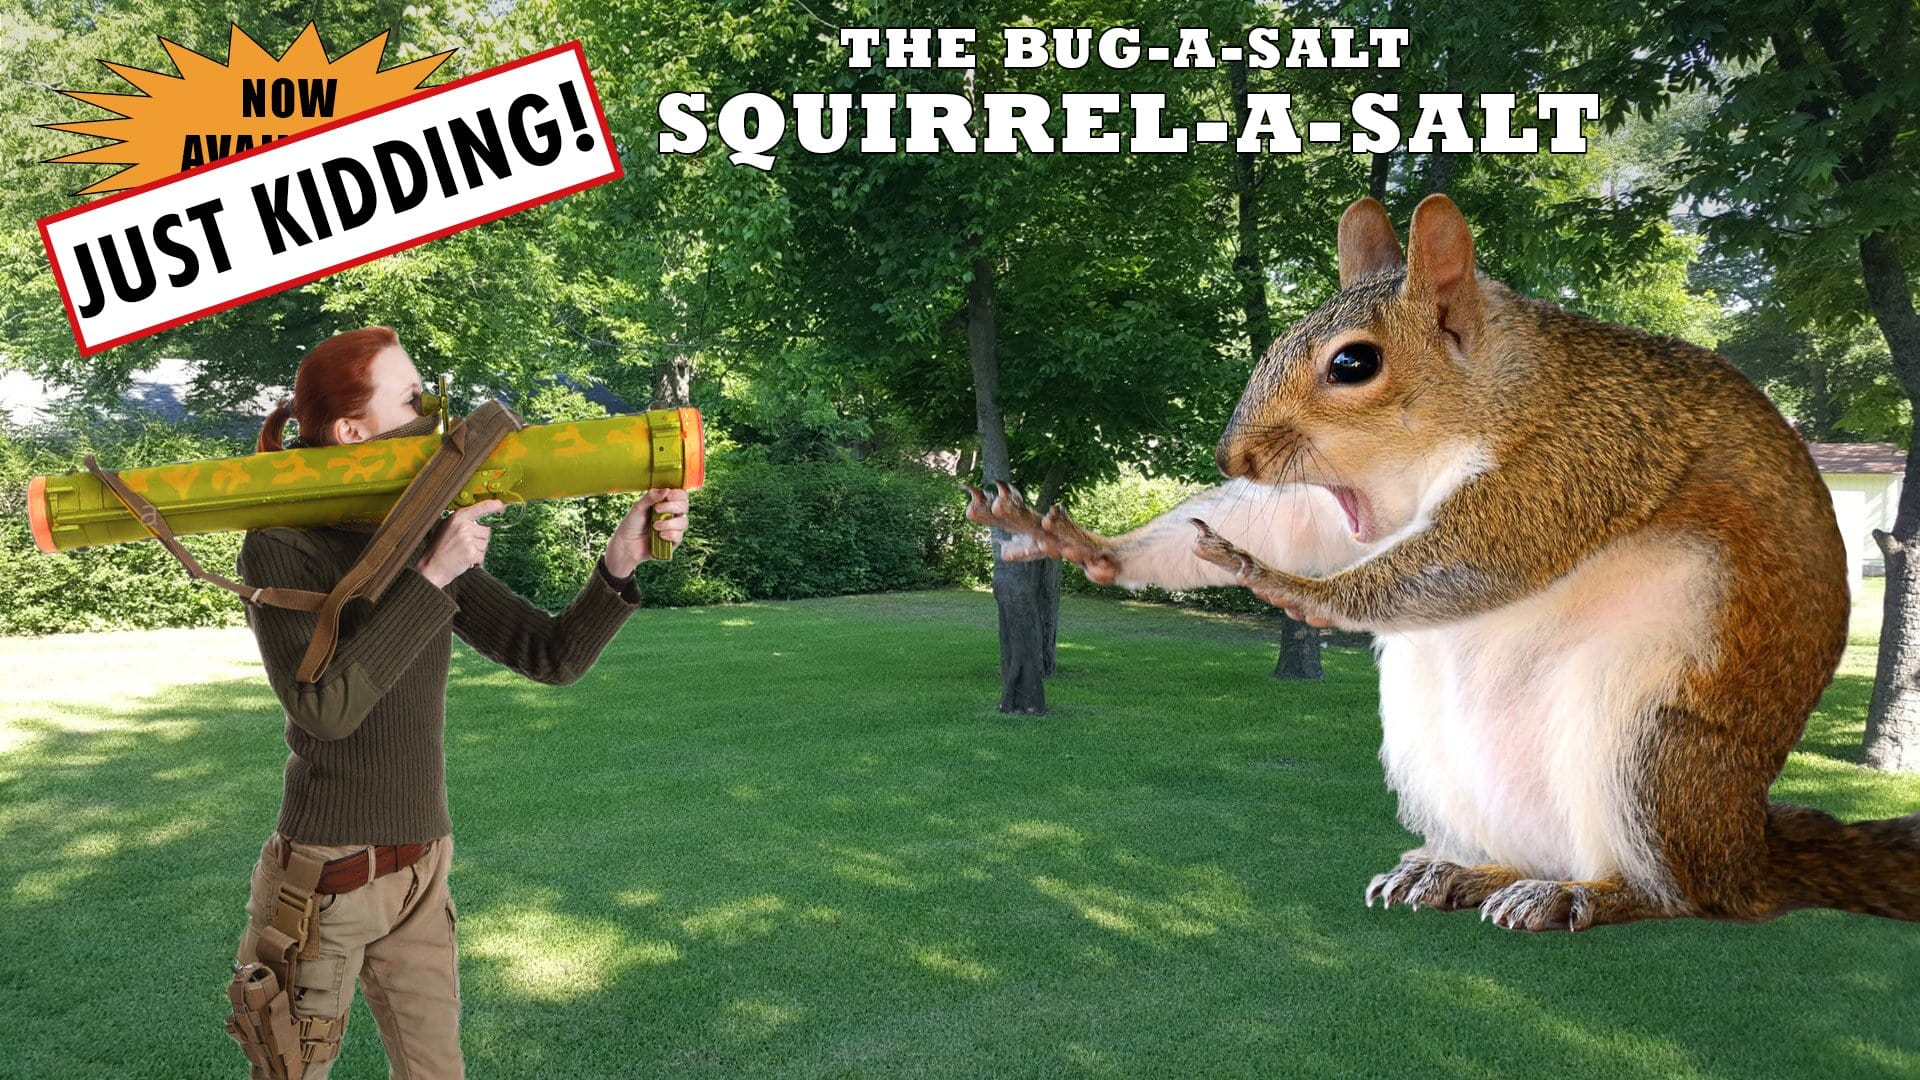 Squirrel-A-Salt